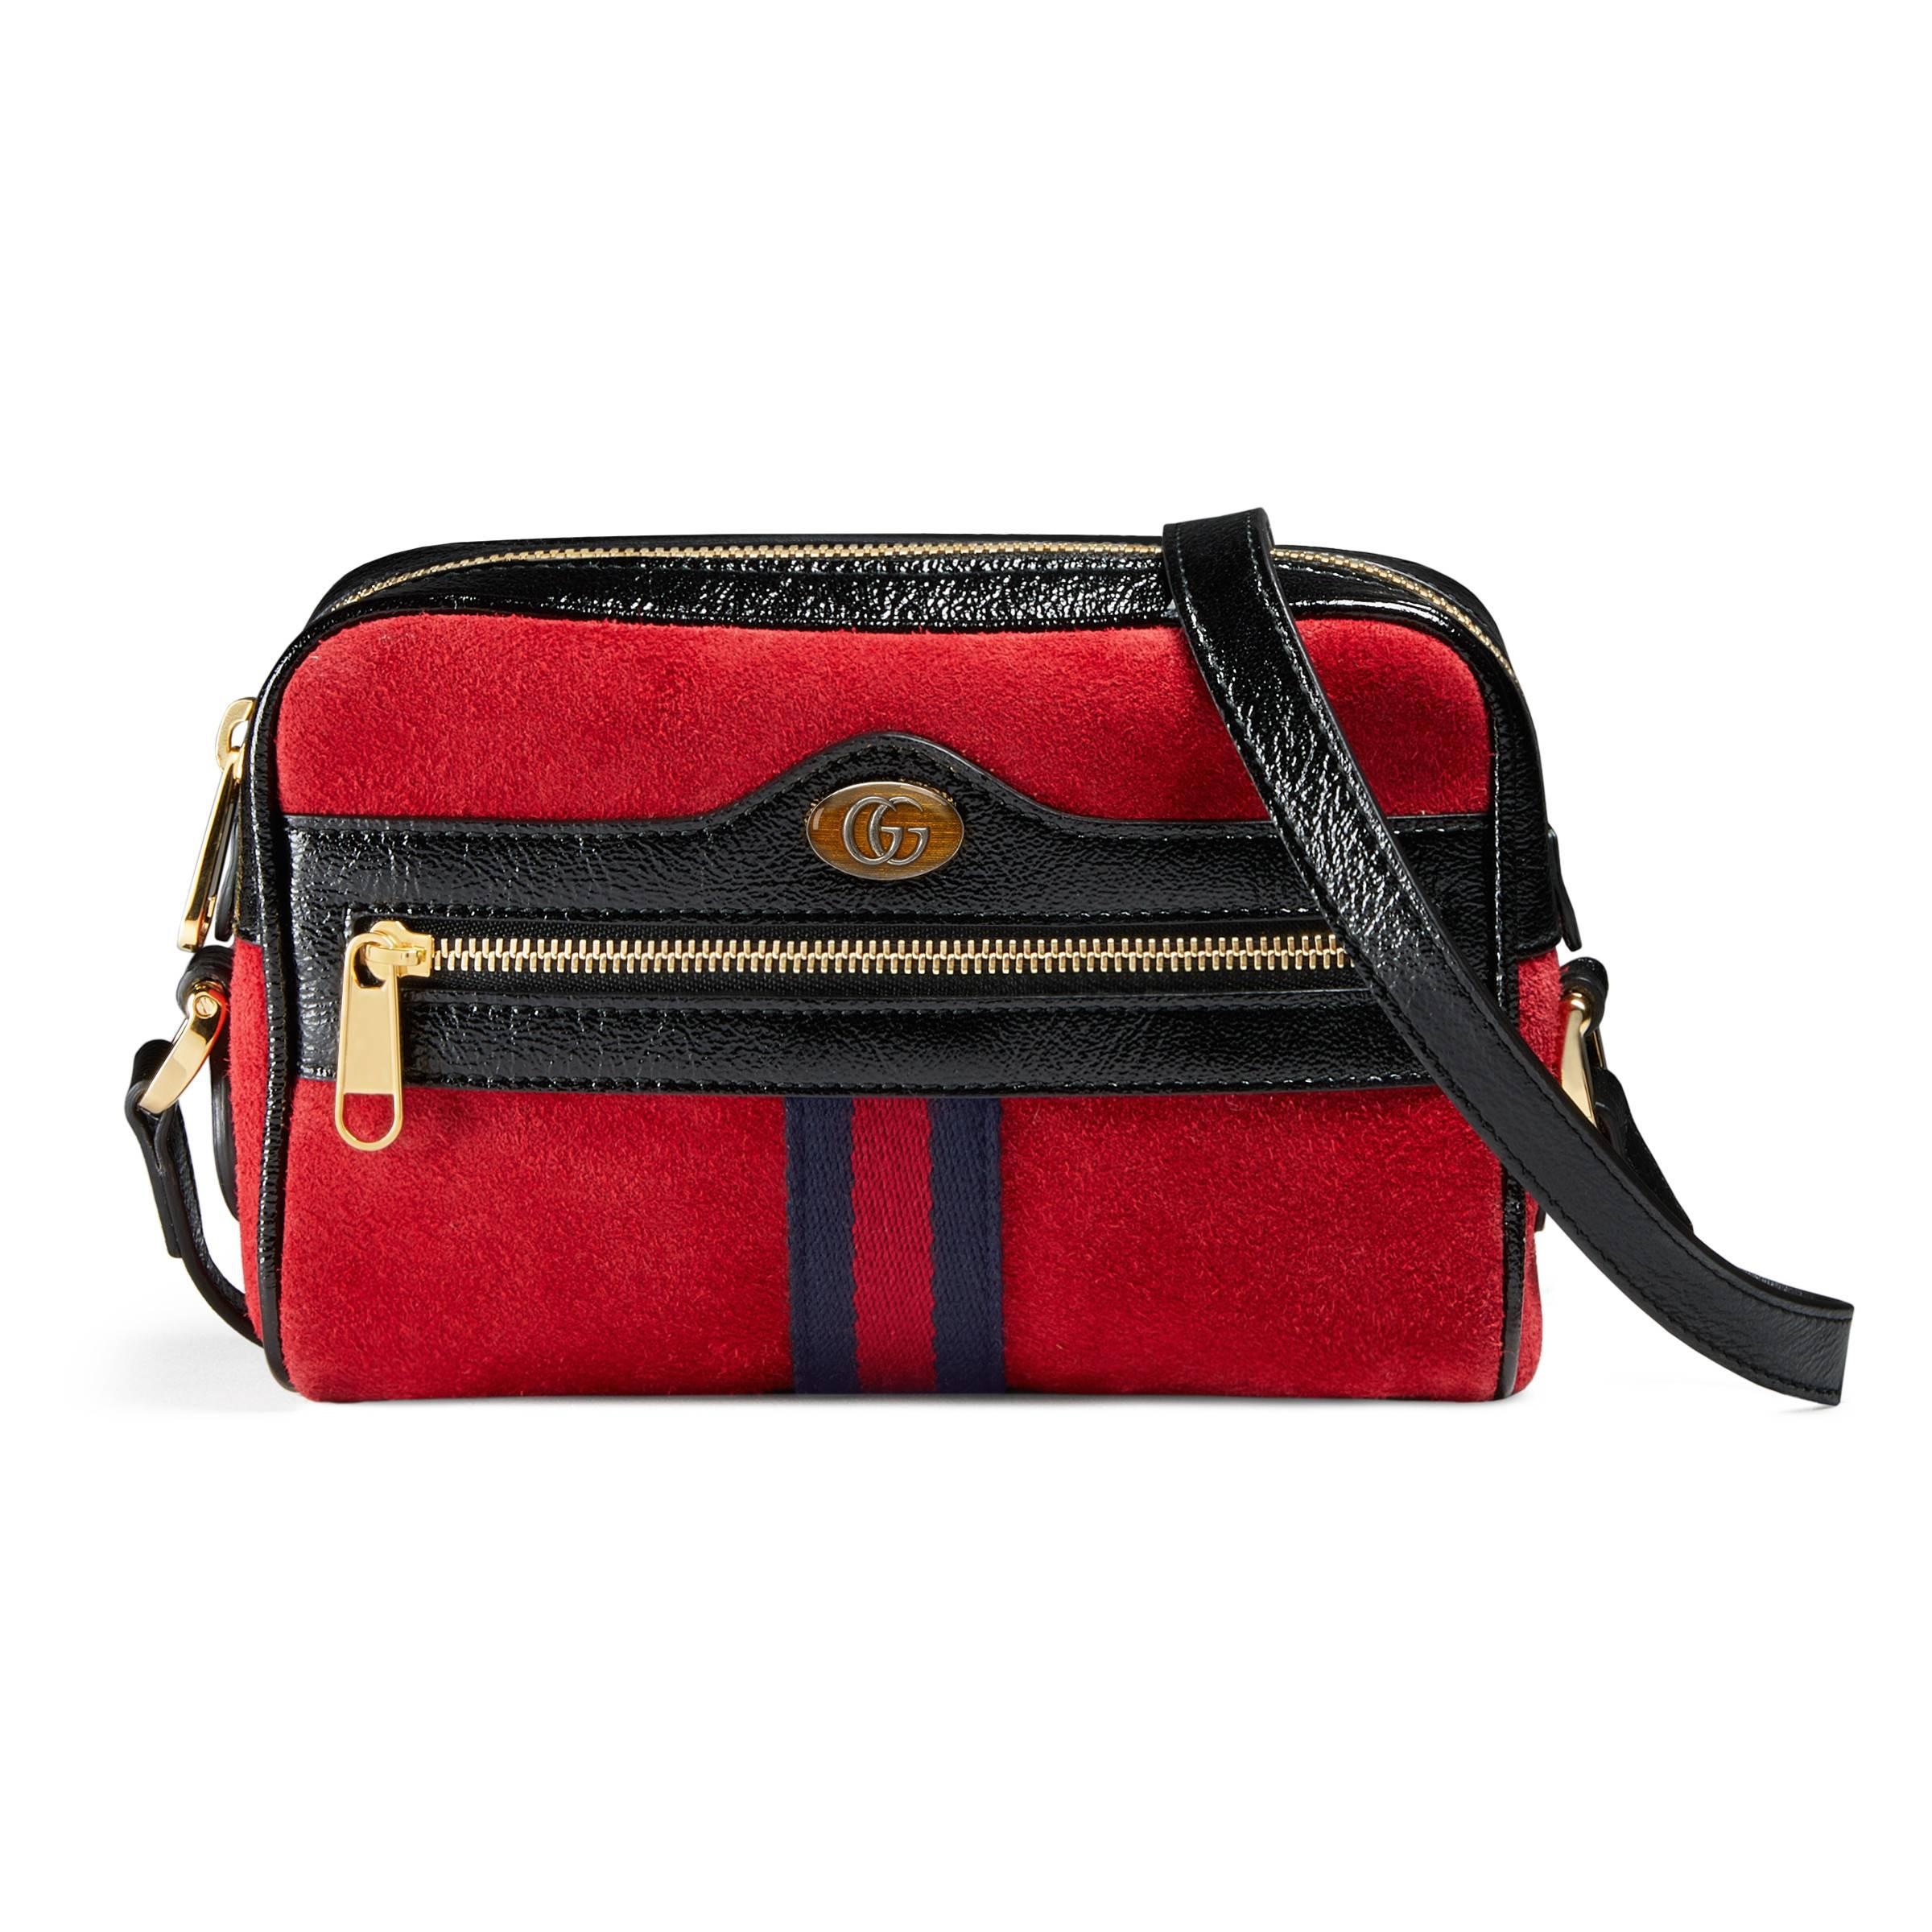 ab12ee6e85b Gucci Ophidia Suede Mini Bag in Red - Lyst